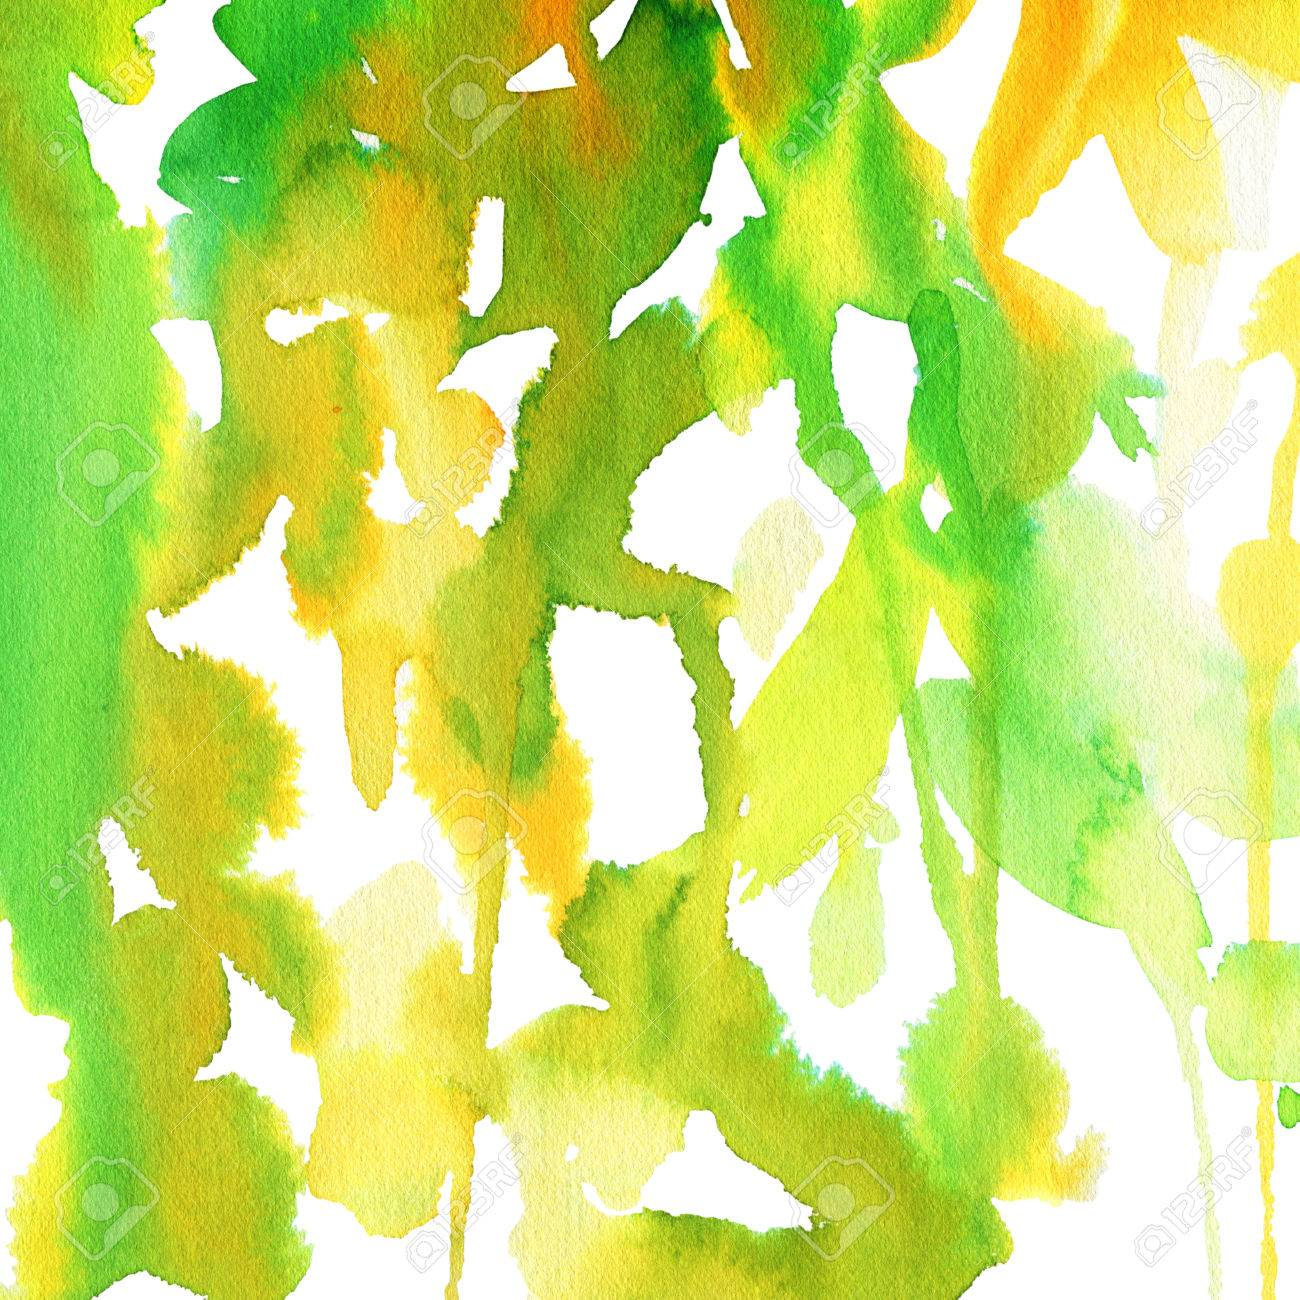 Abstract Watercolor Background To Create A Greeting Card With